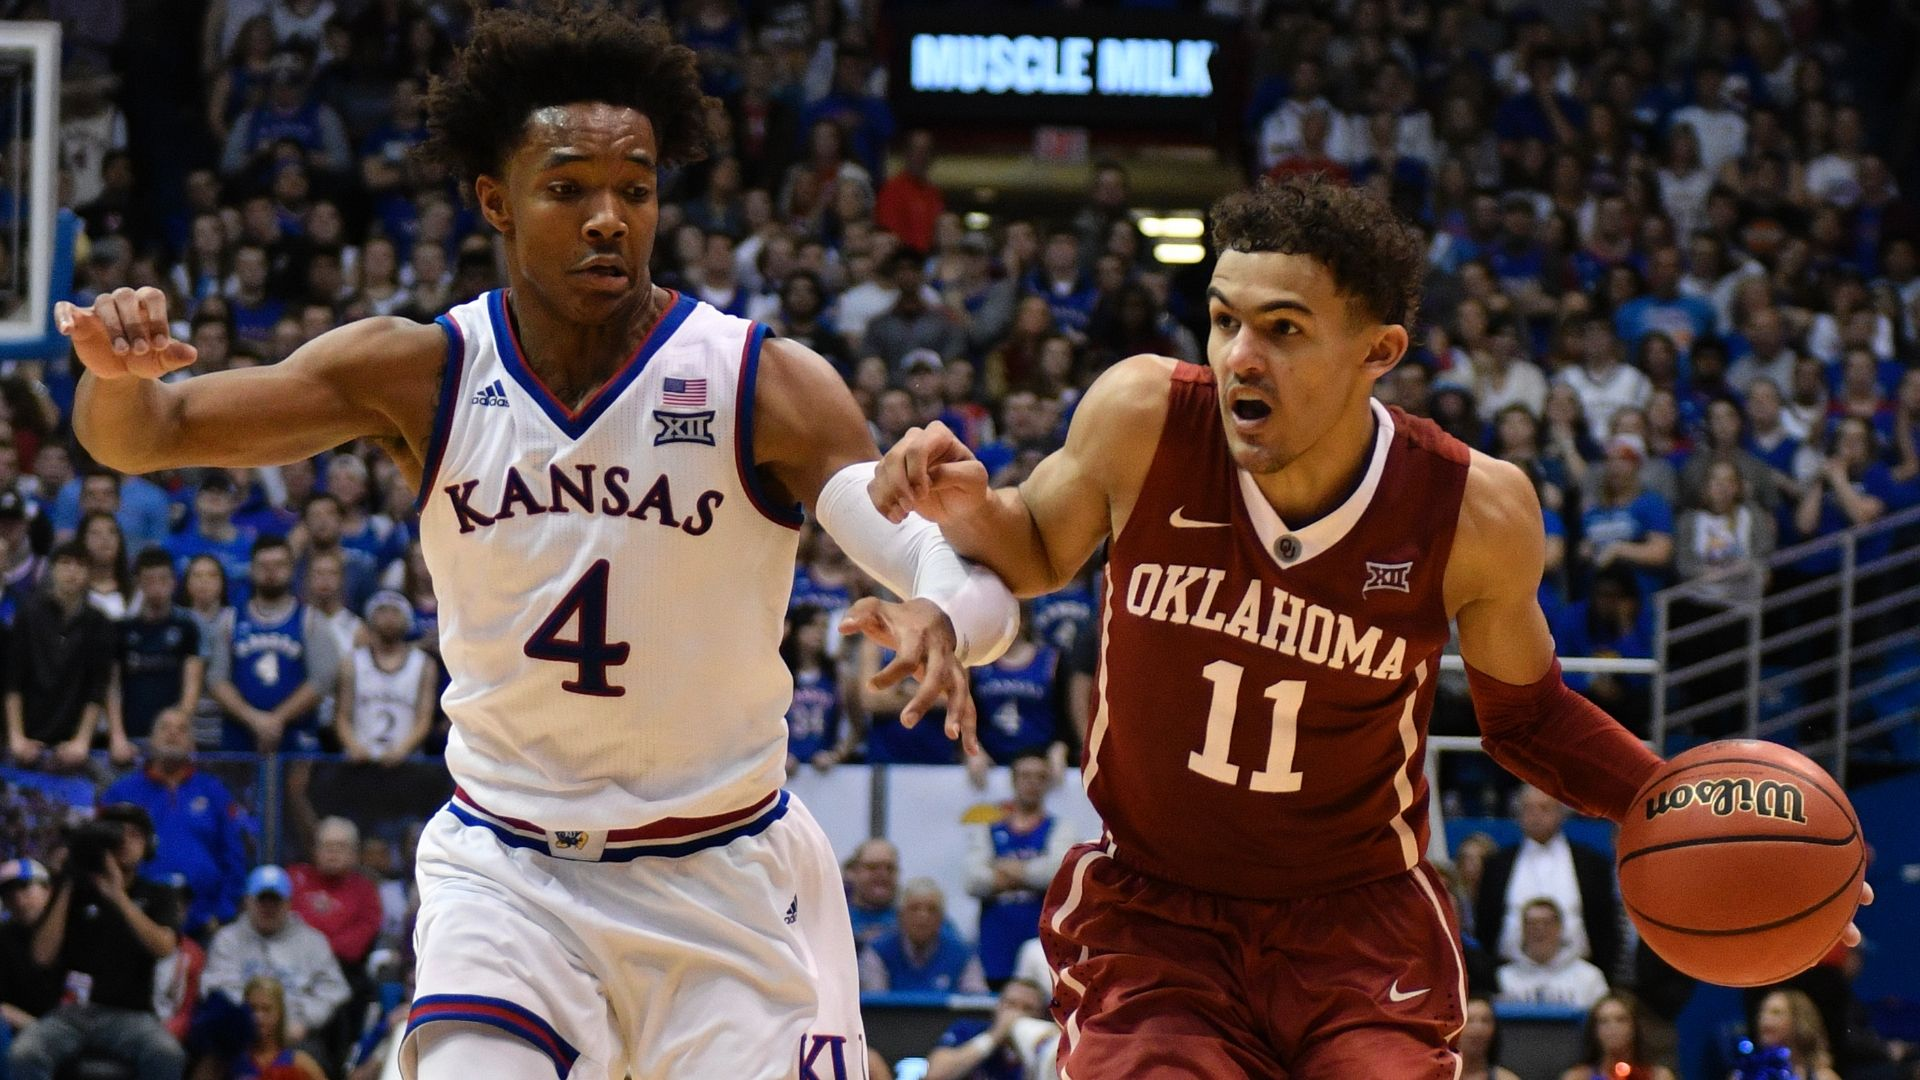 Kansas routs Young, Oklahoma